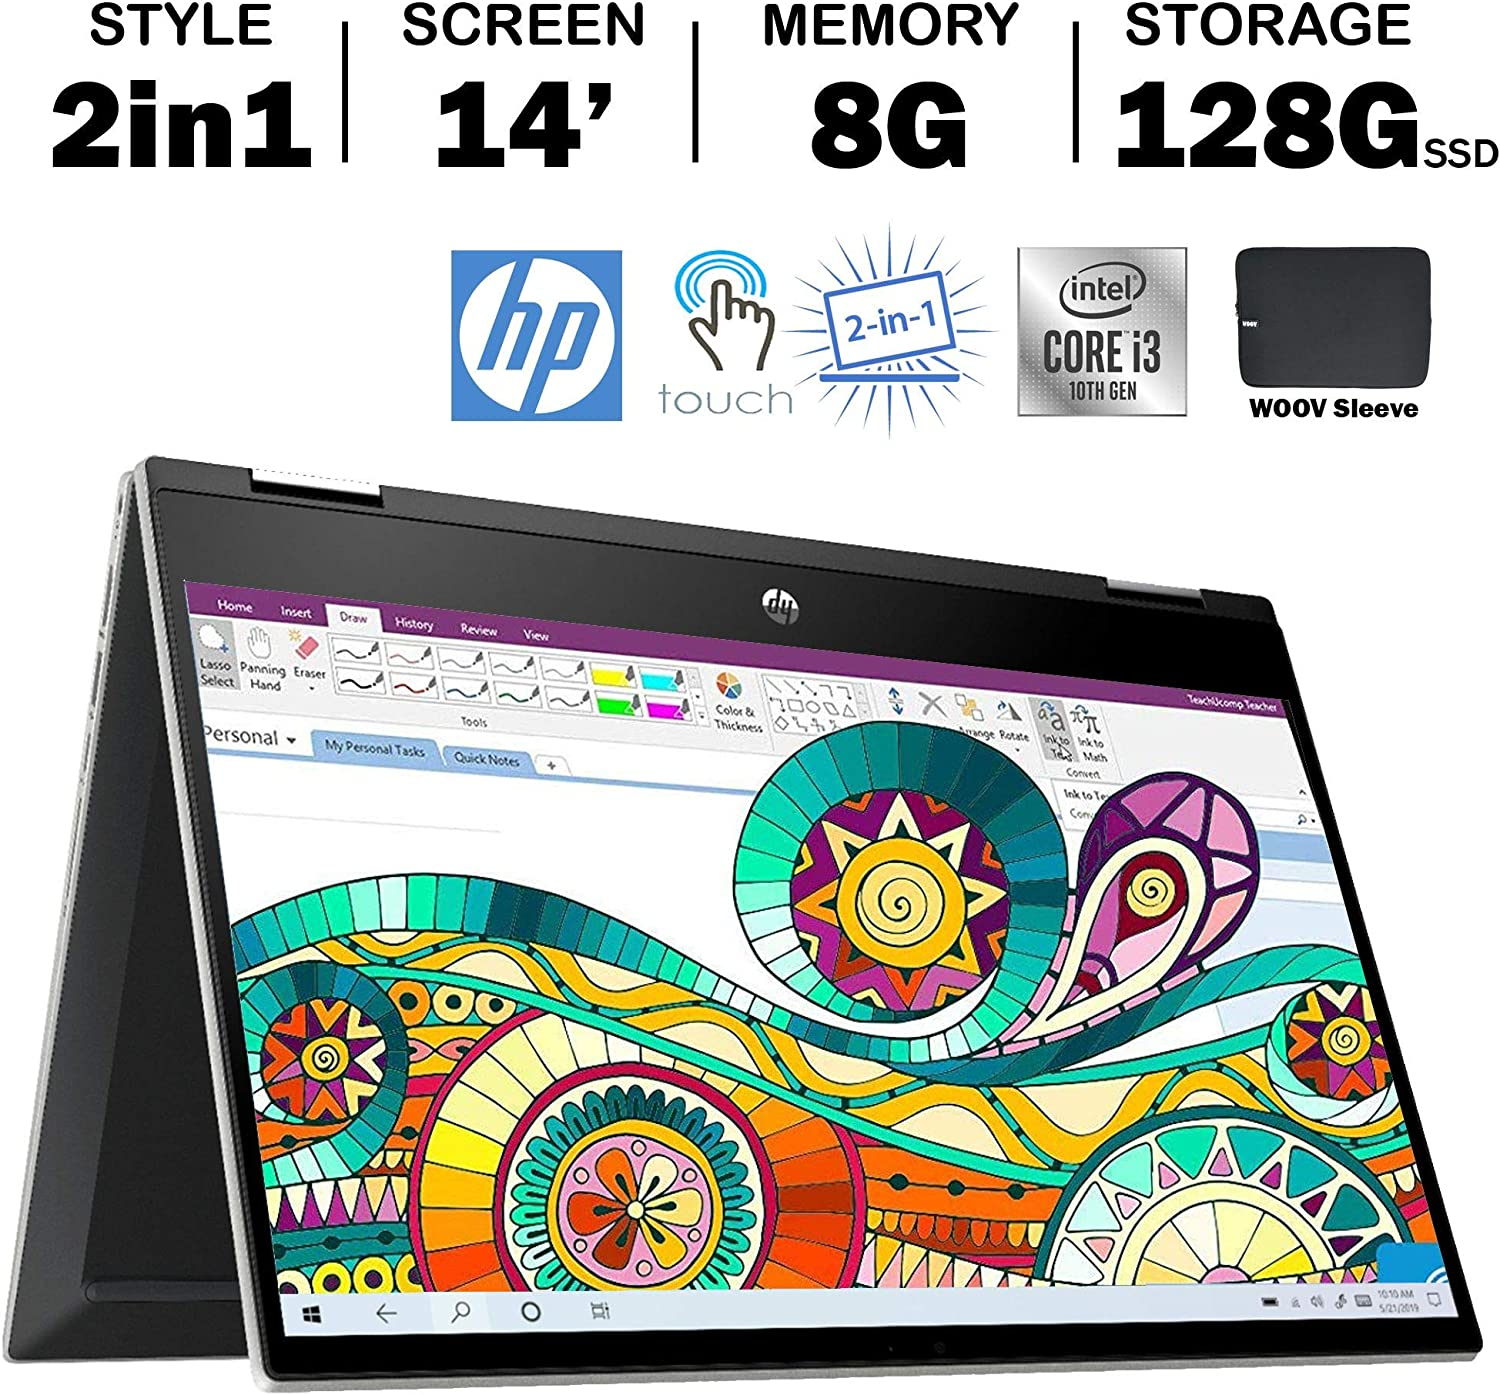 Hp Pavilion X360 14 Inch Student and Business 2-in-1 Touchscreen Laptop with Woov Sleeve, Intel Dual-core i3-1005G1 (Beat i5-7200U), 8GB RAM, 512GB PCIe SSD, Wireless AC, Windows 10, Silver